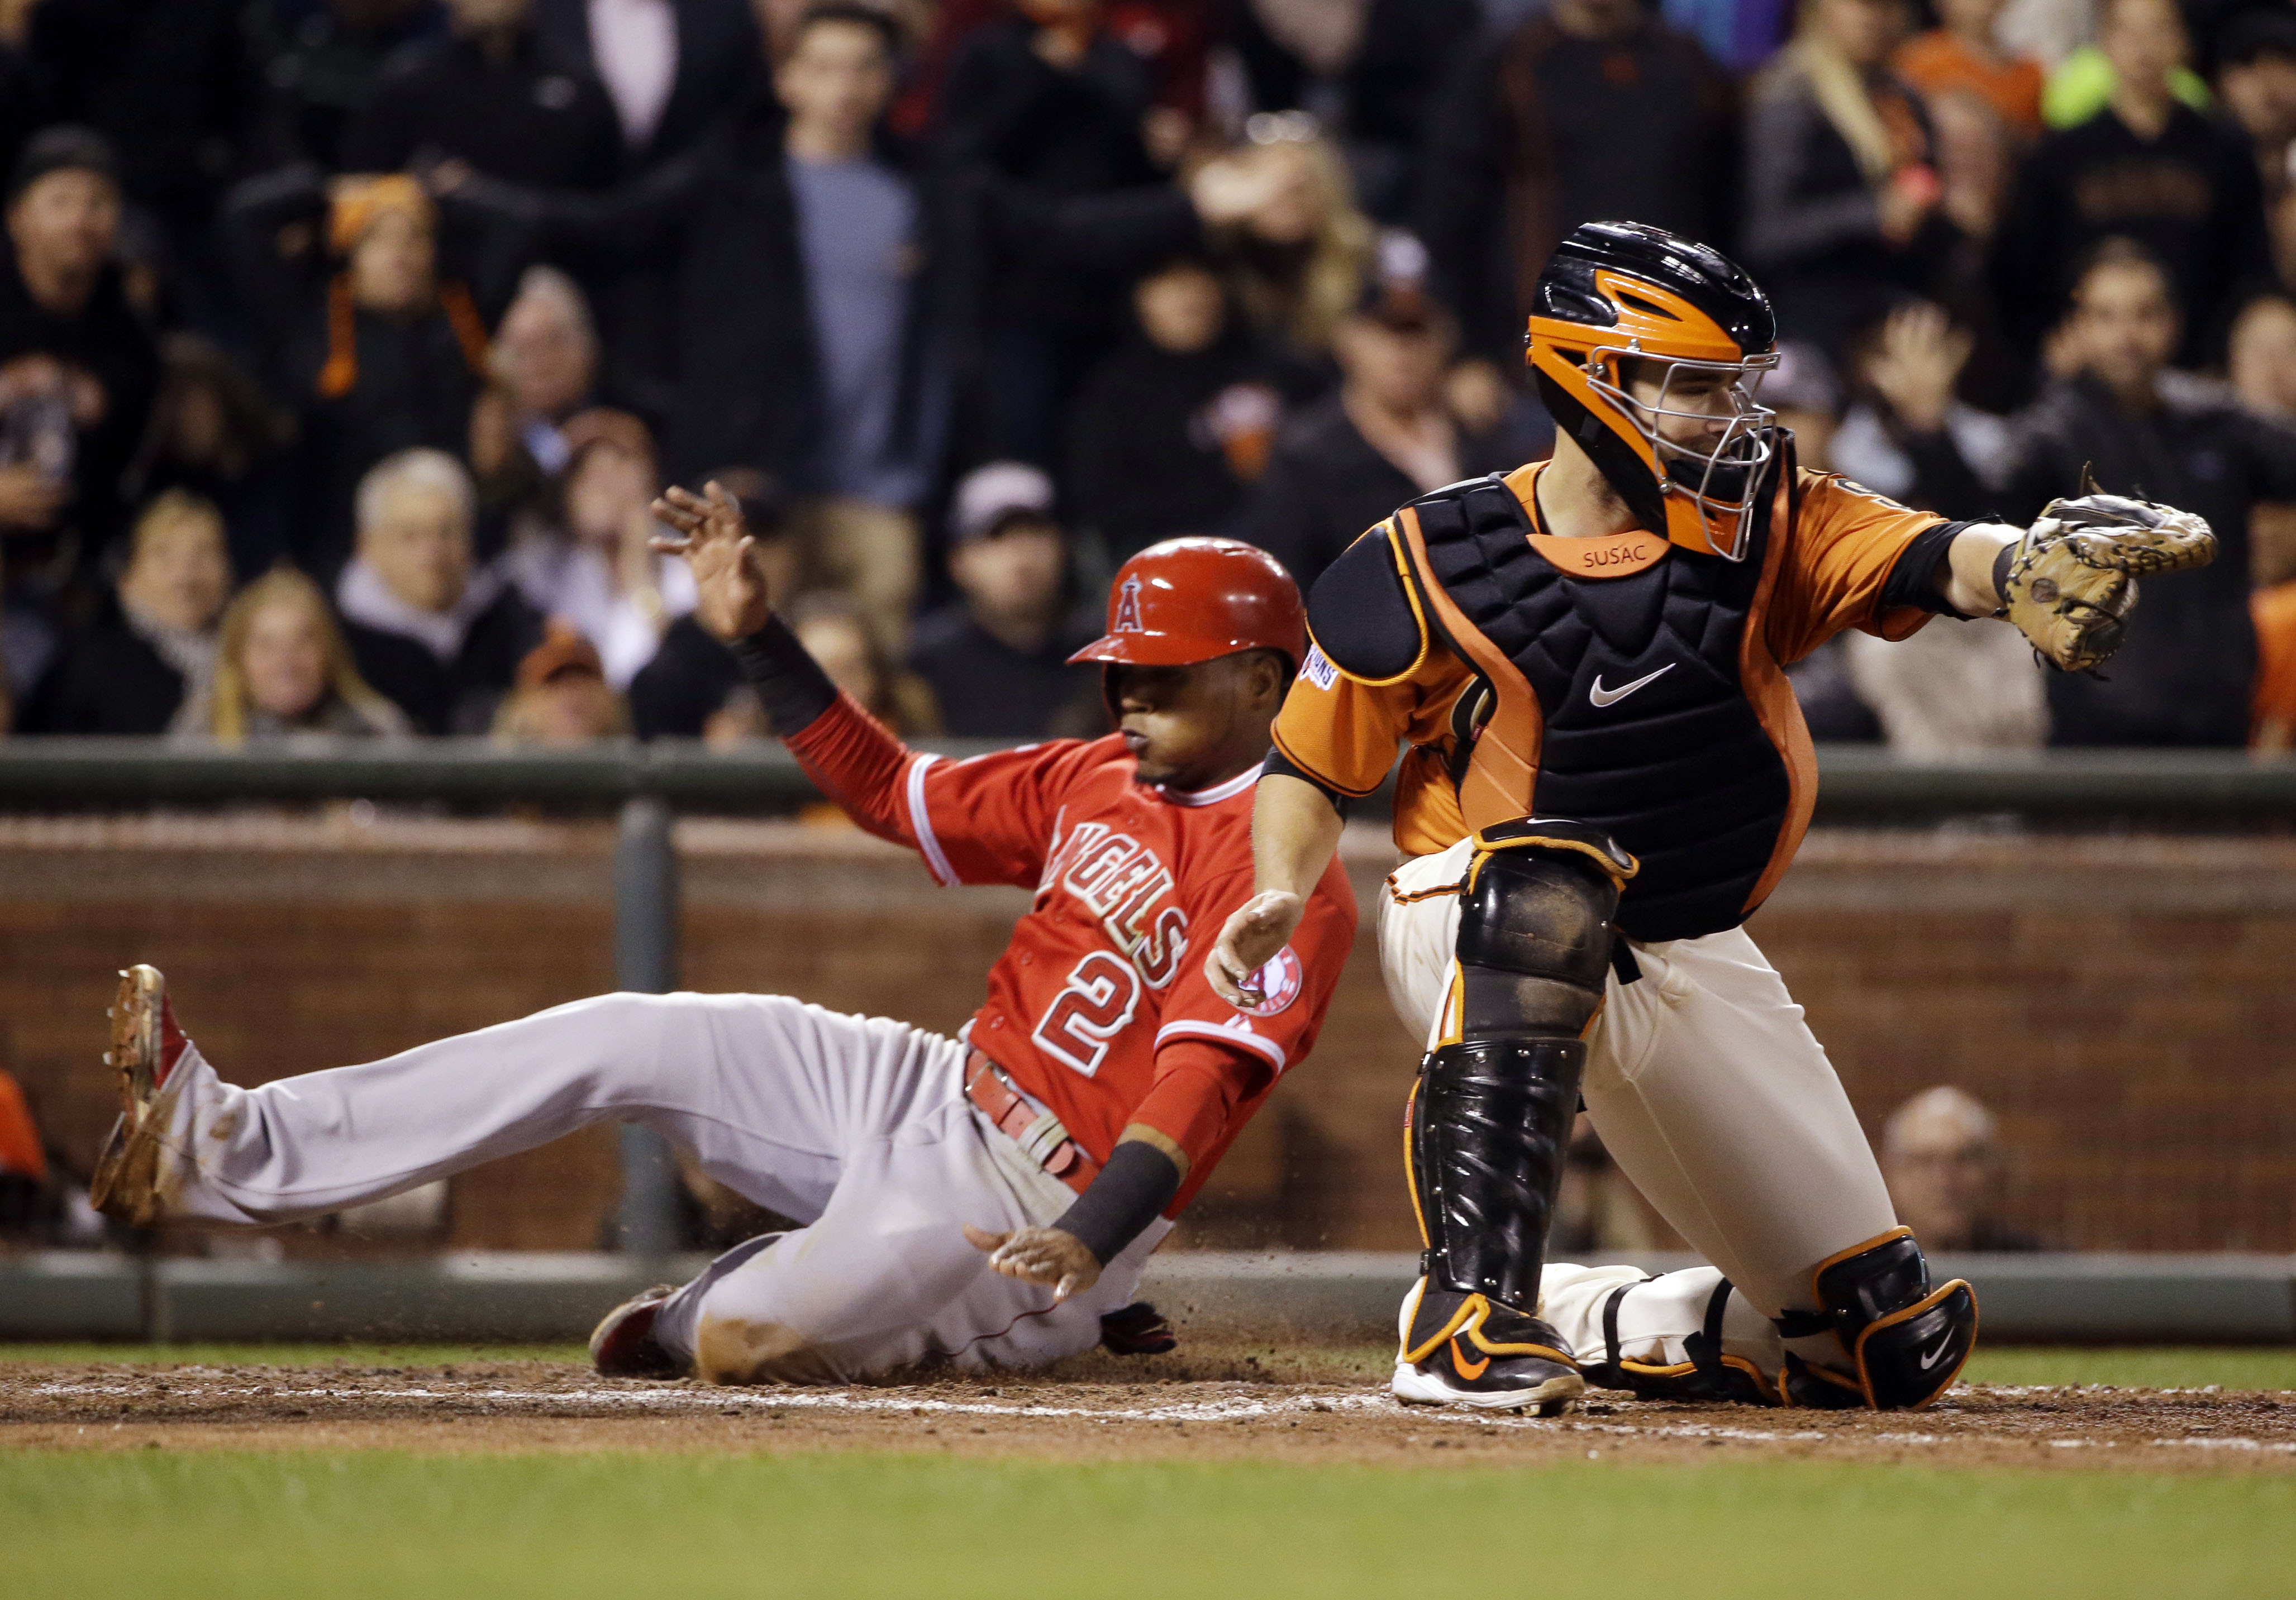 Los Angeles Angels' Erick Aybar (2) scores past San Francisco Giants catcher Andrew Susac on a sacrifice fly ball by David Freese during the eighth inning of a baseball game on Friday, May 1, 2015, in San Francisco. (AP Photo/Marcio Jose Sanchez)